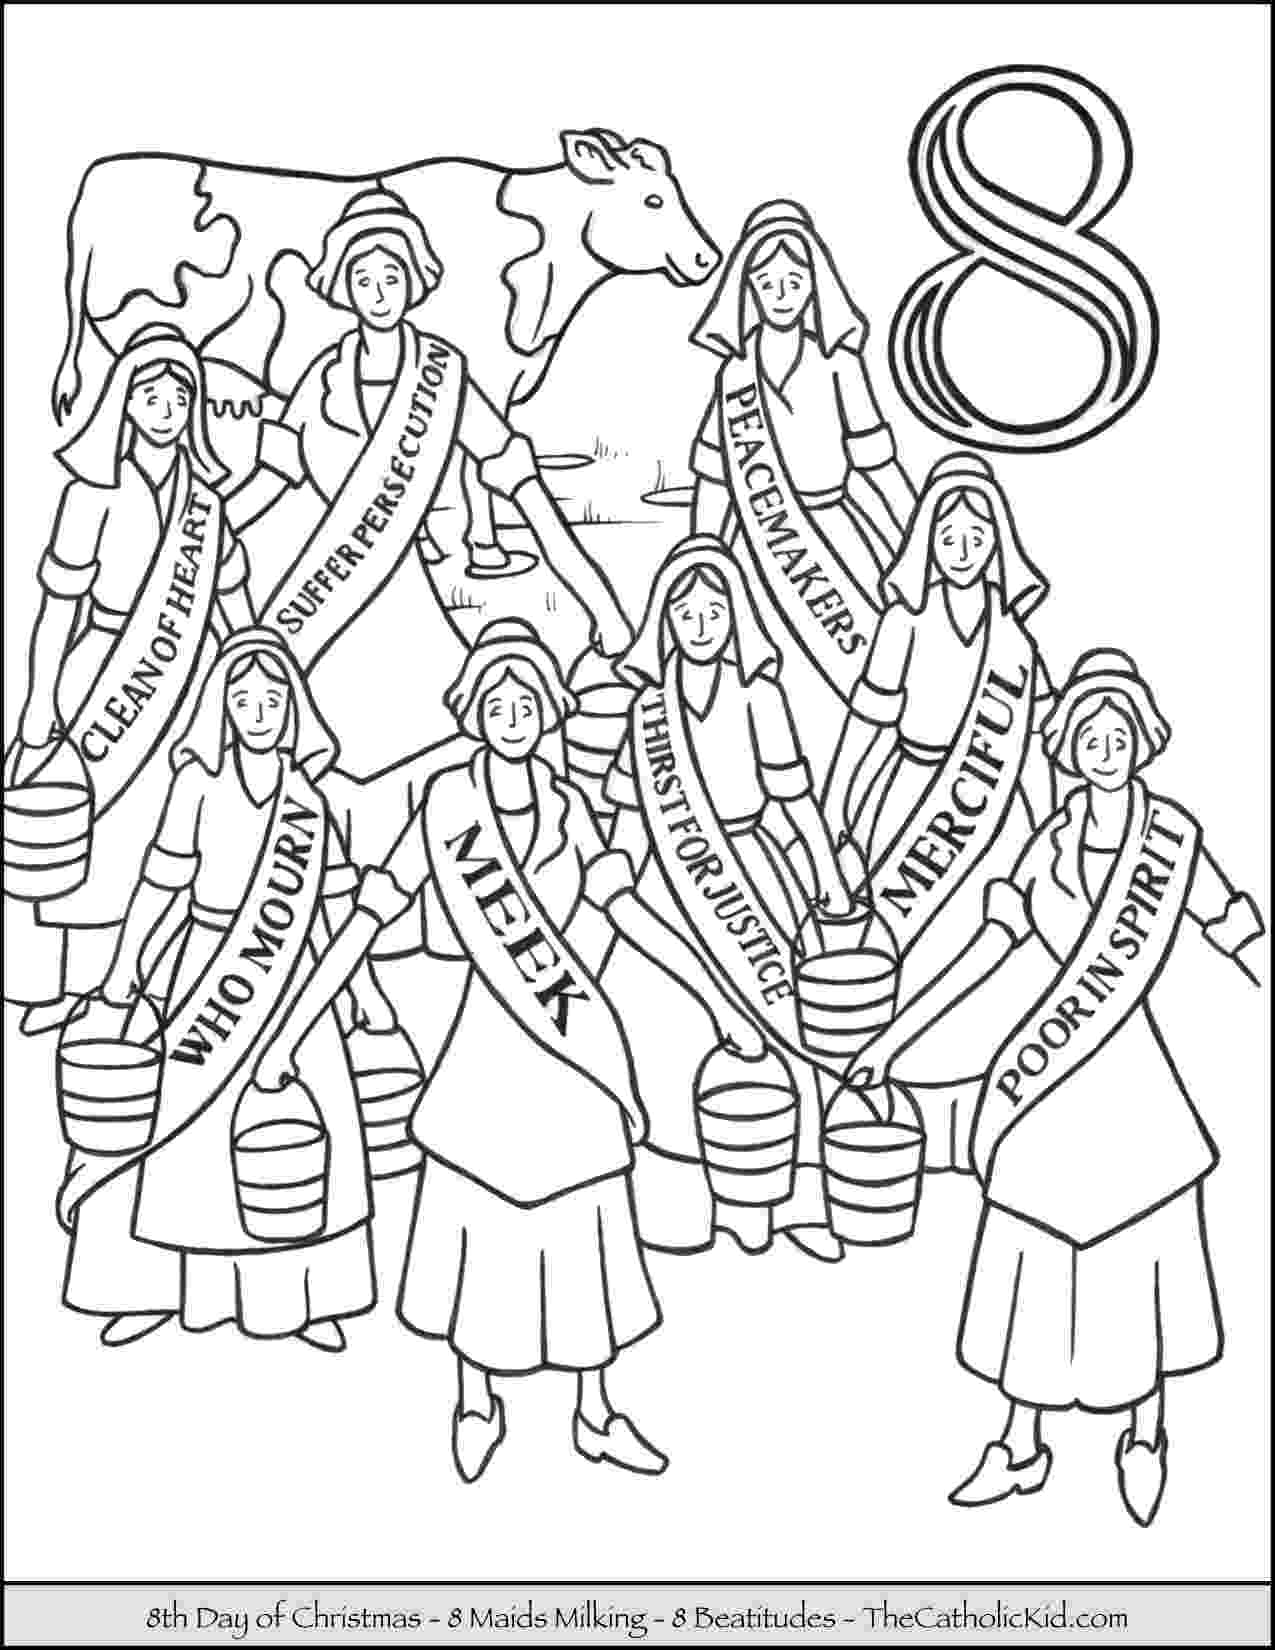 12 days of christmas coloring pages twelve days of christmas coloring pages free at coloring 12 days of christmas pages